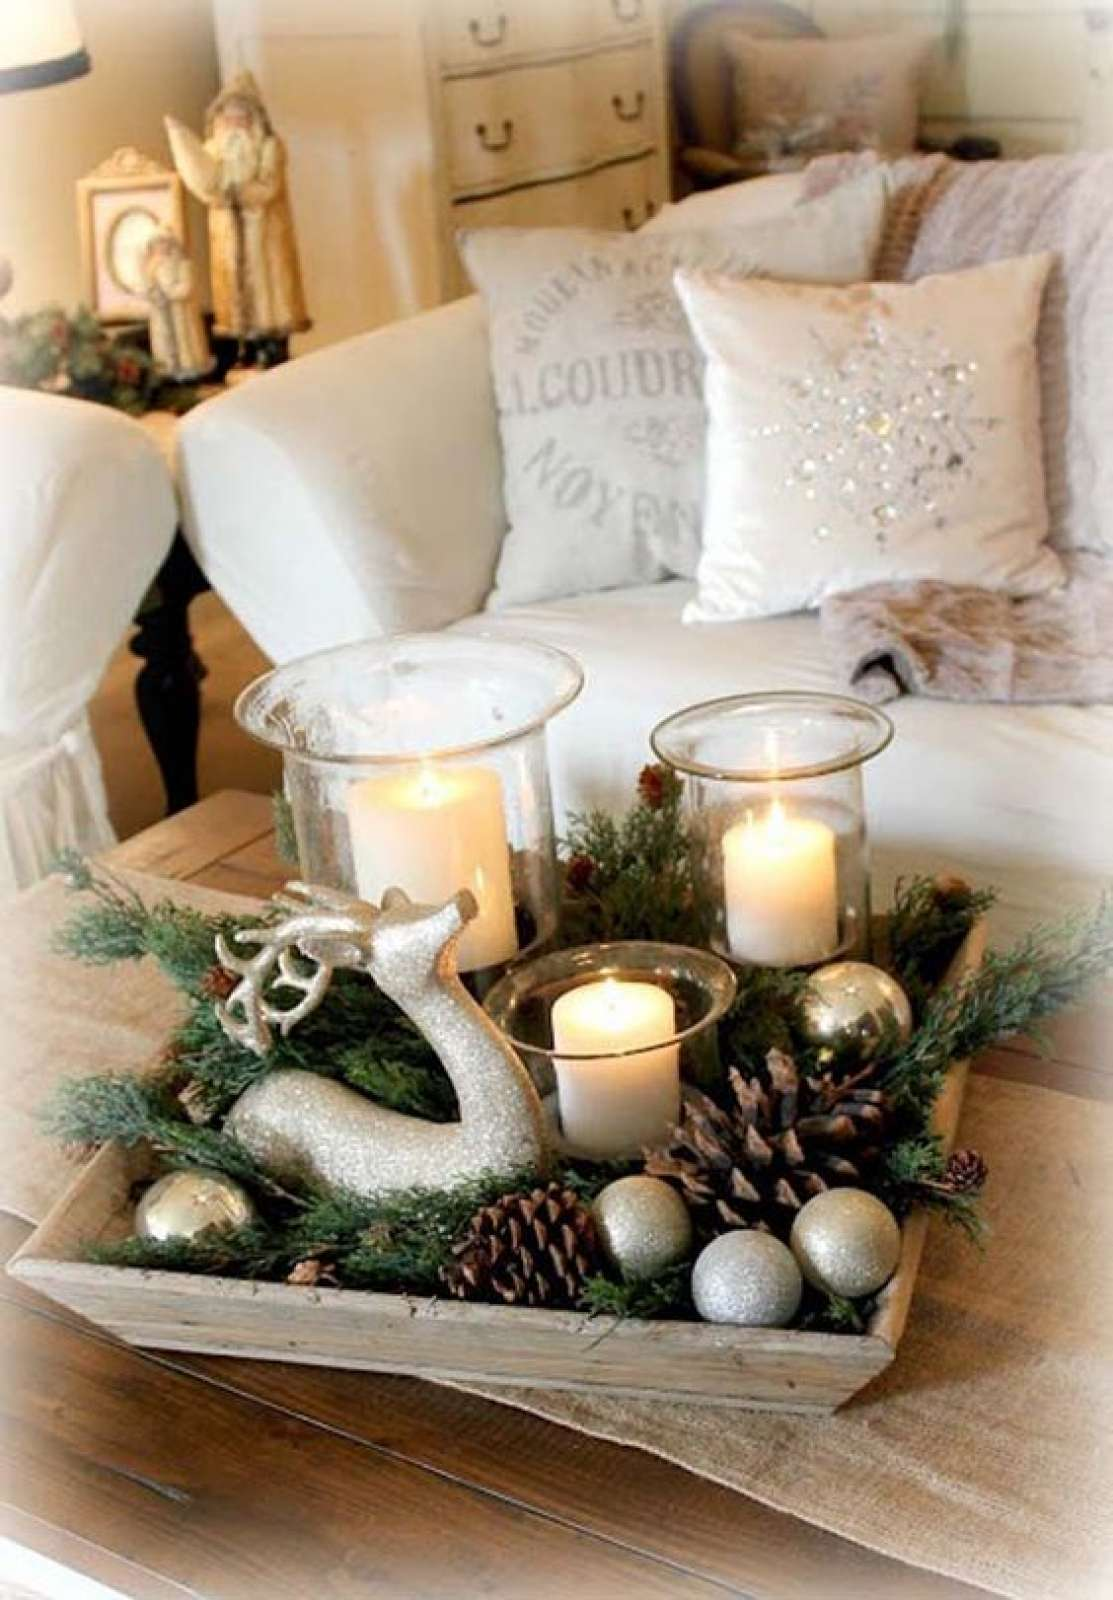 reindeer coffee table centerpiece - Christmas Table Decorations